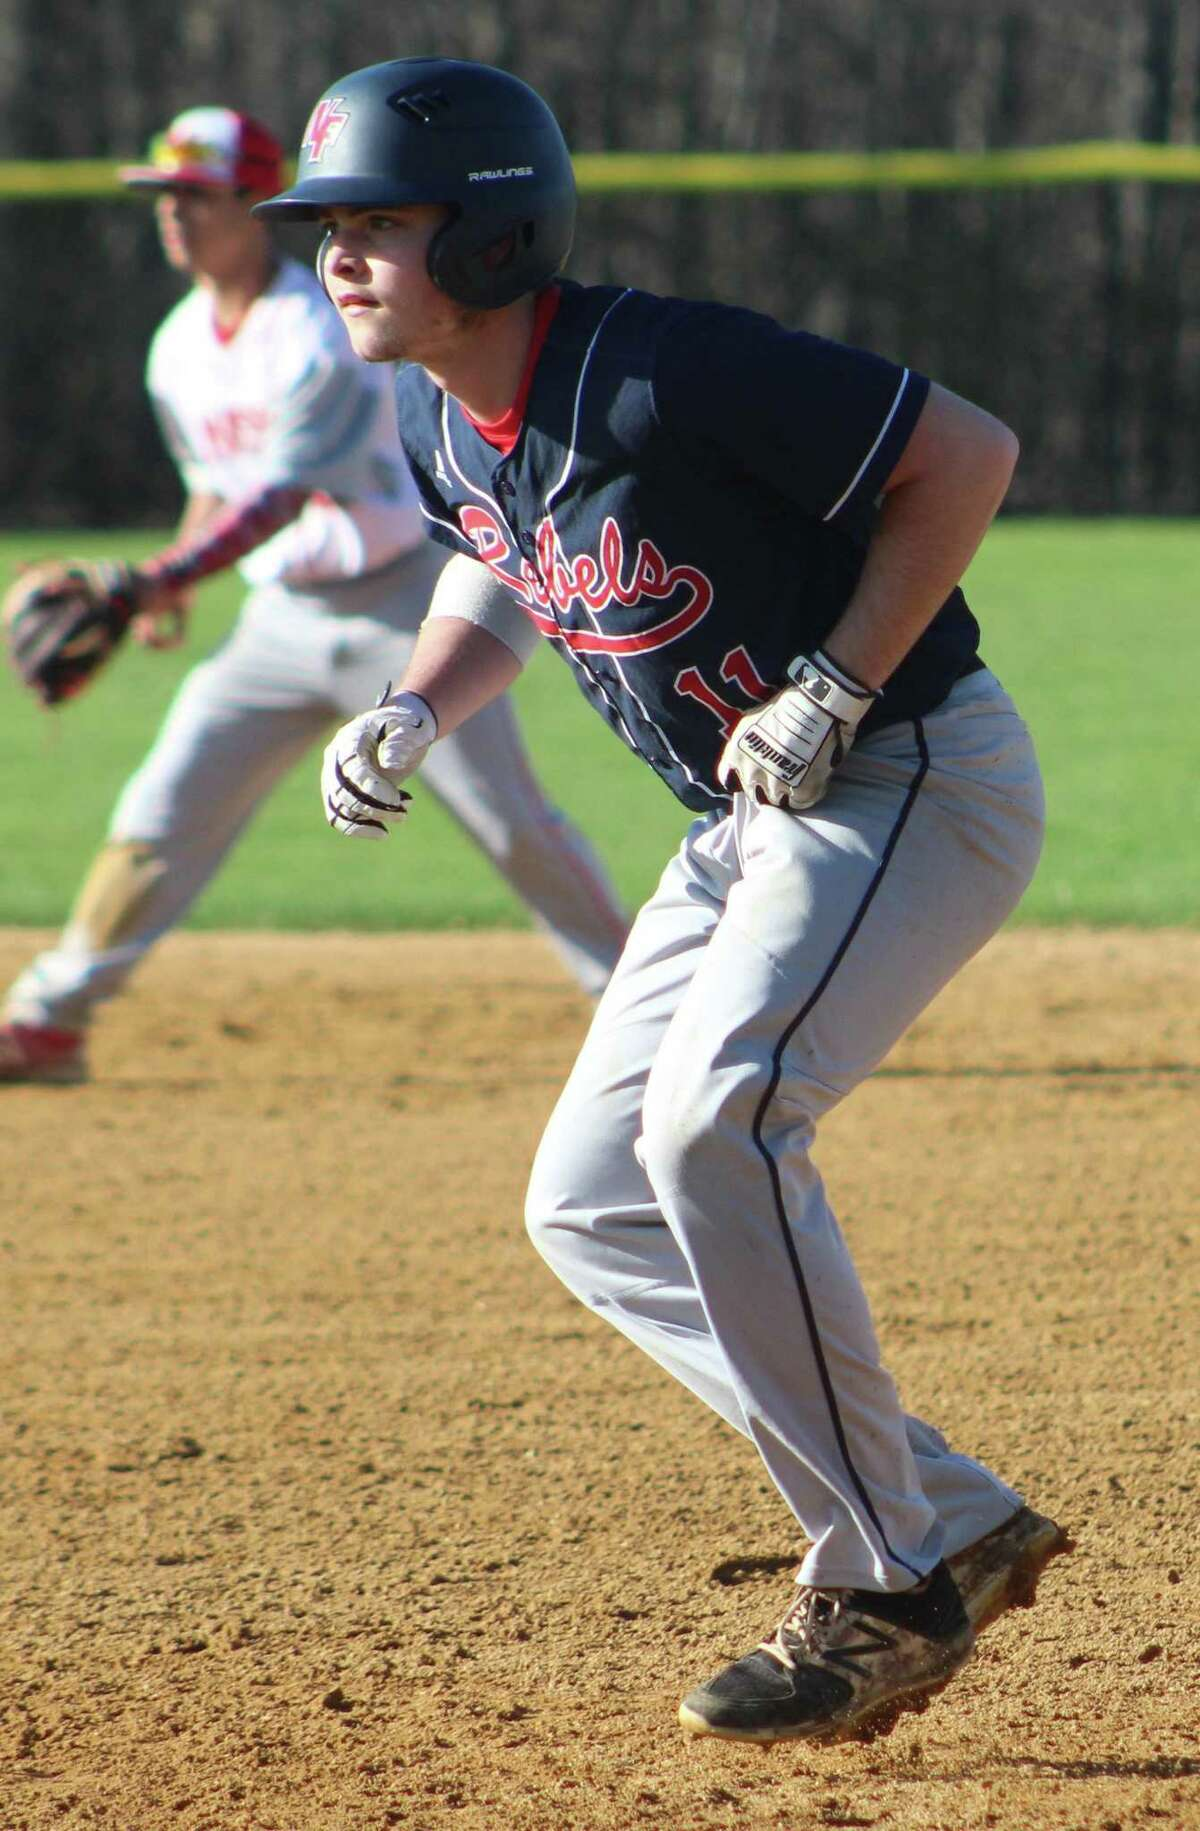 New Fairfield's Chris Forsberg takes his secondary lead off first base during the baseball game against Masuk at New Fairfield High School April 26, 2018.